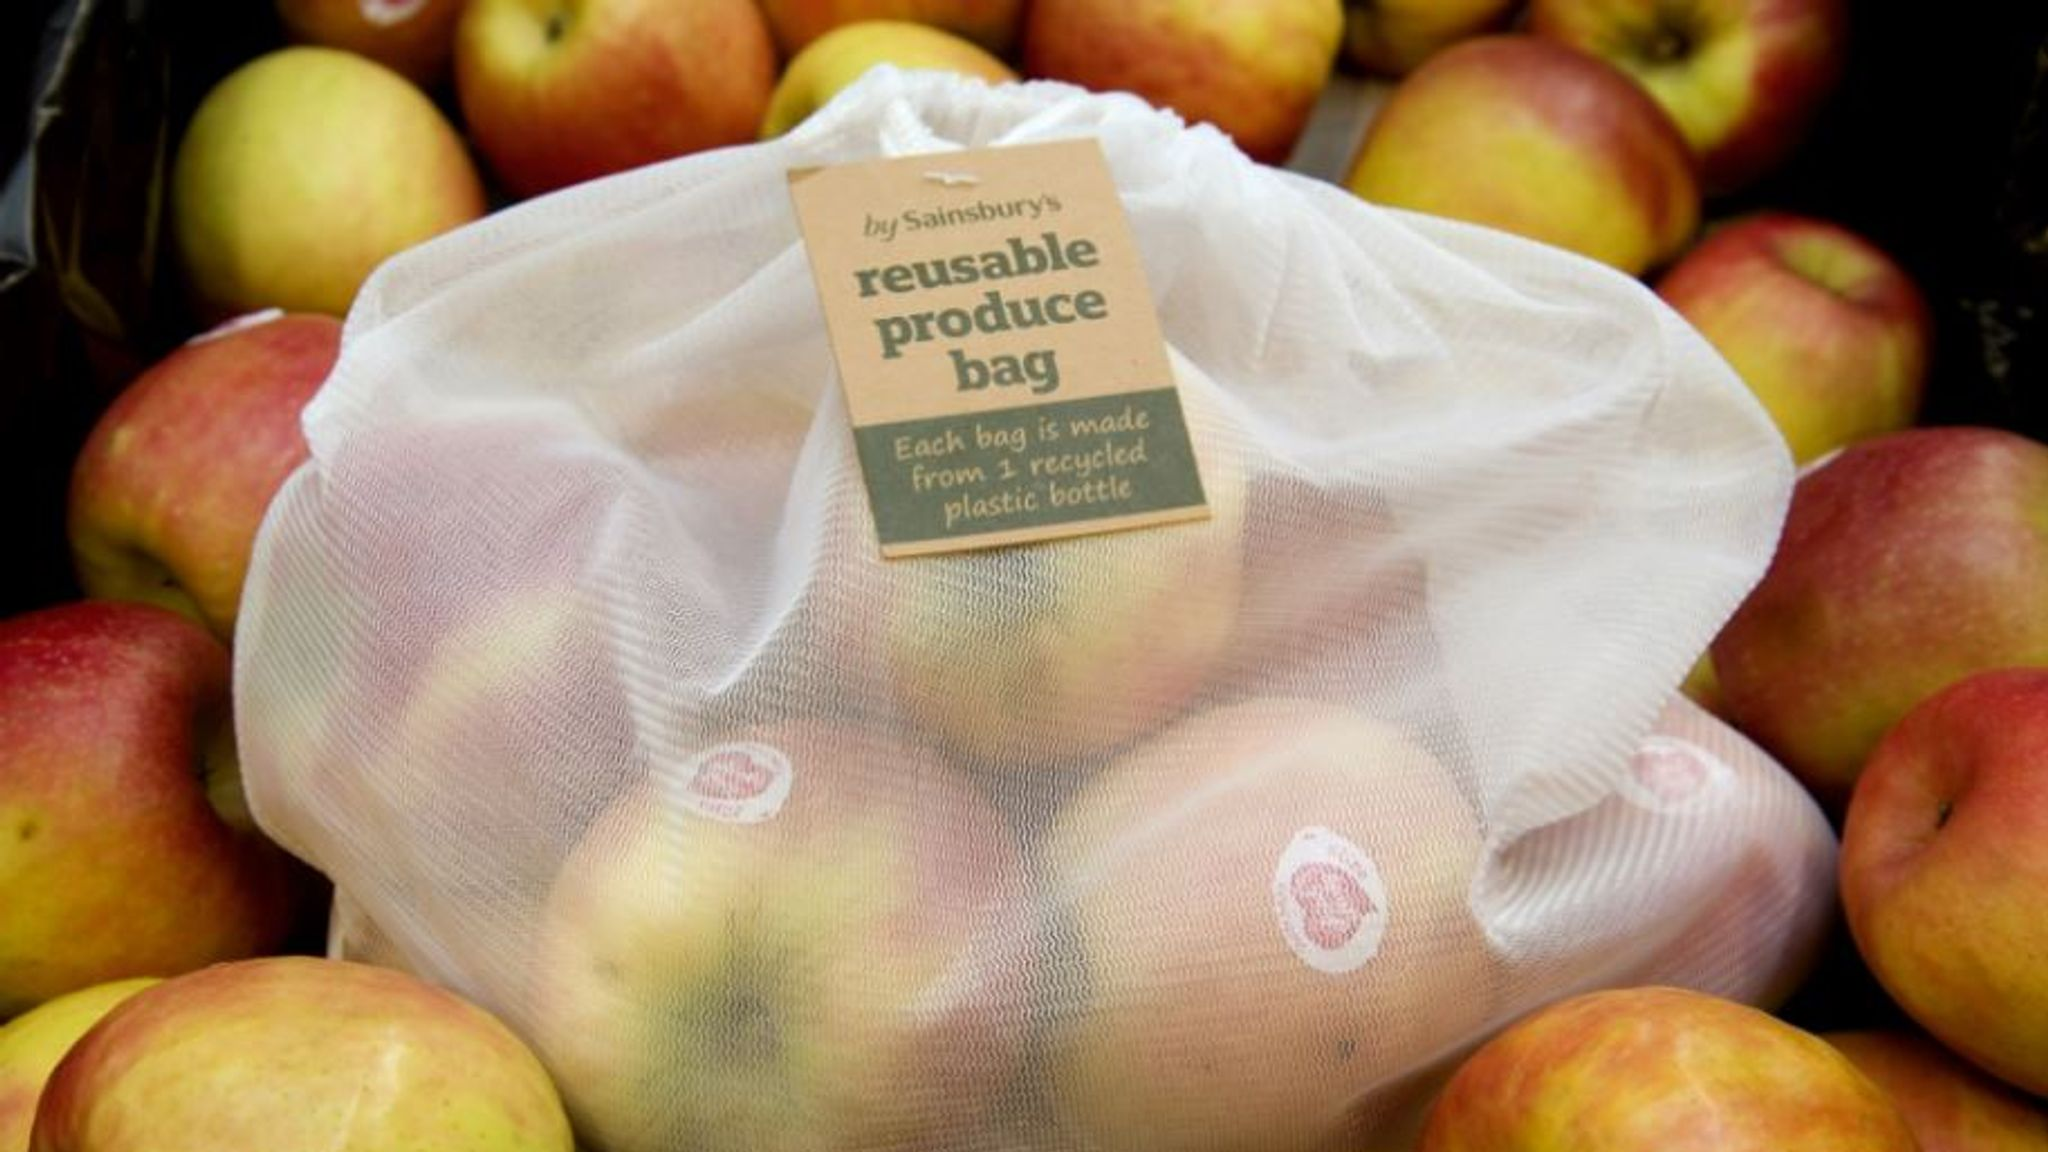 Sainsbury's to introduce refillable packaging to slash plastic use